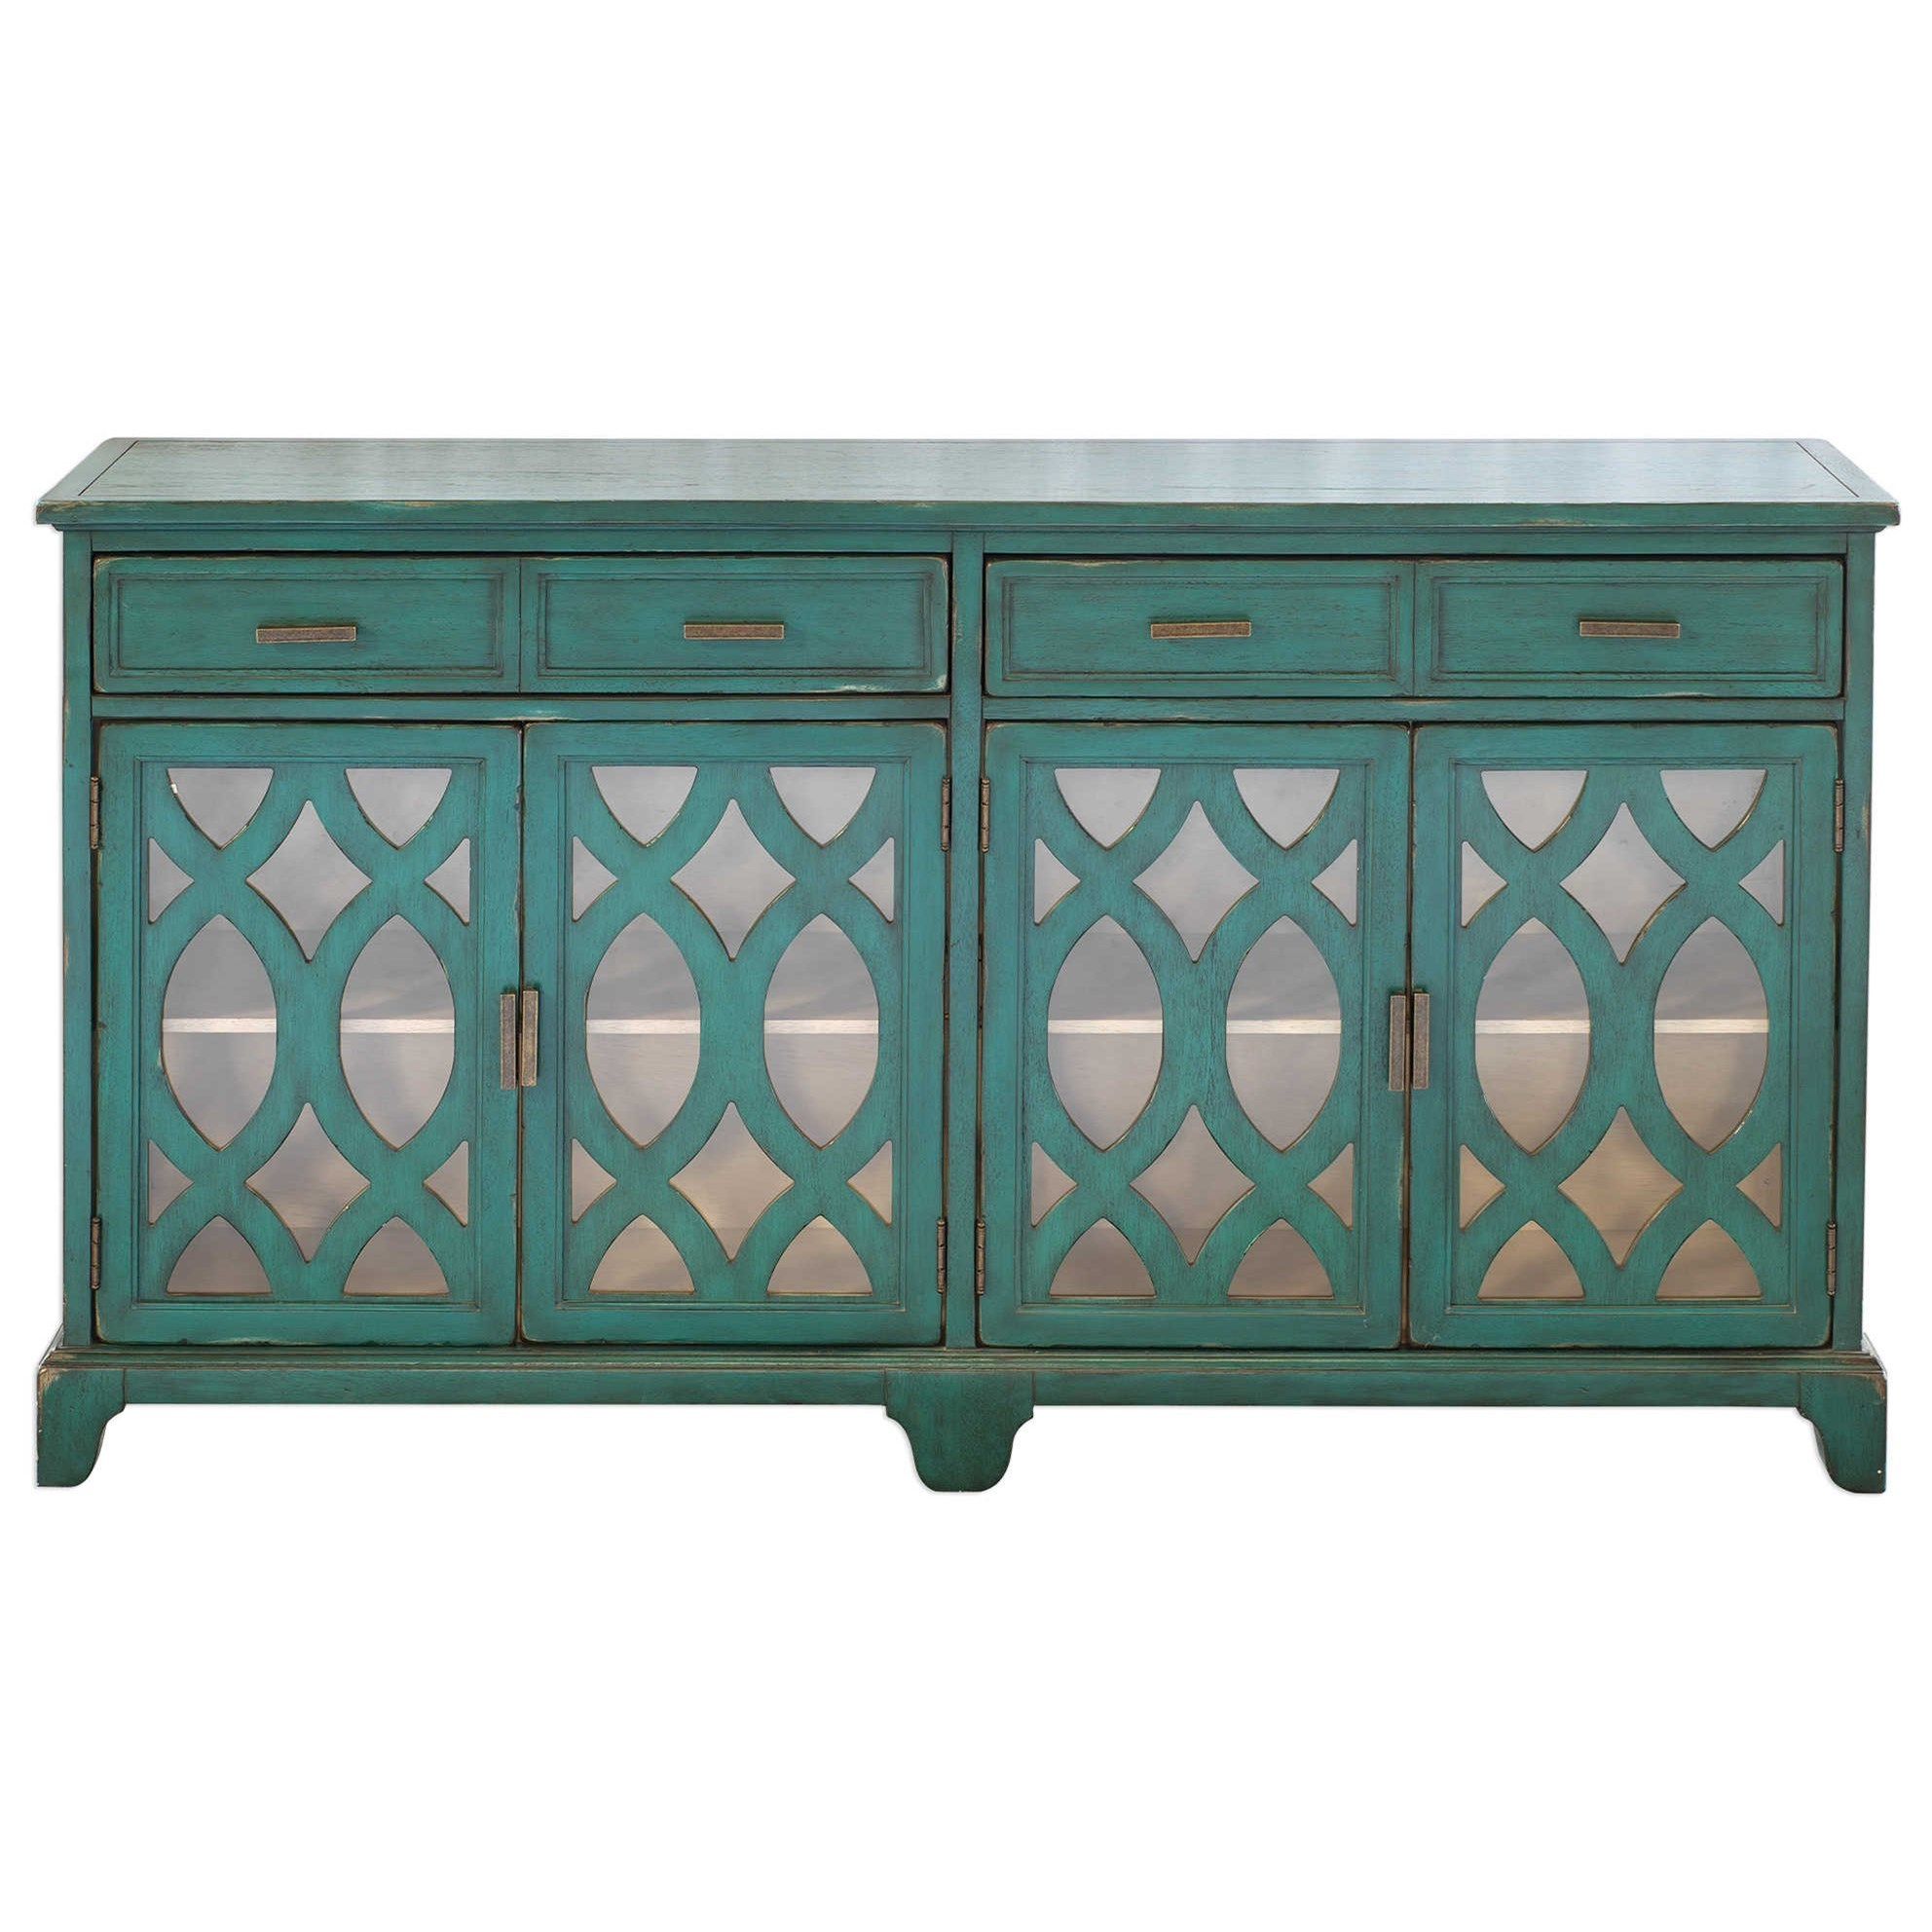 Accent Furniture Oksana Wooden Credenza by Uttermost at Furniture Superstore - Rochester, MN